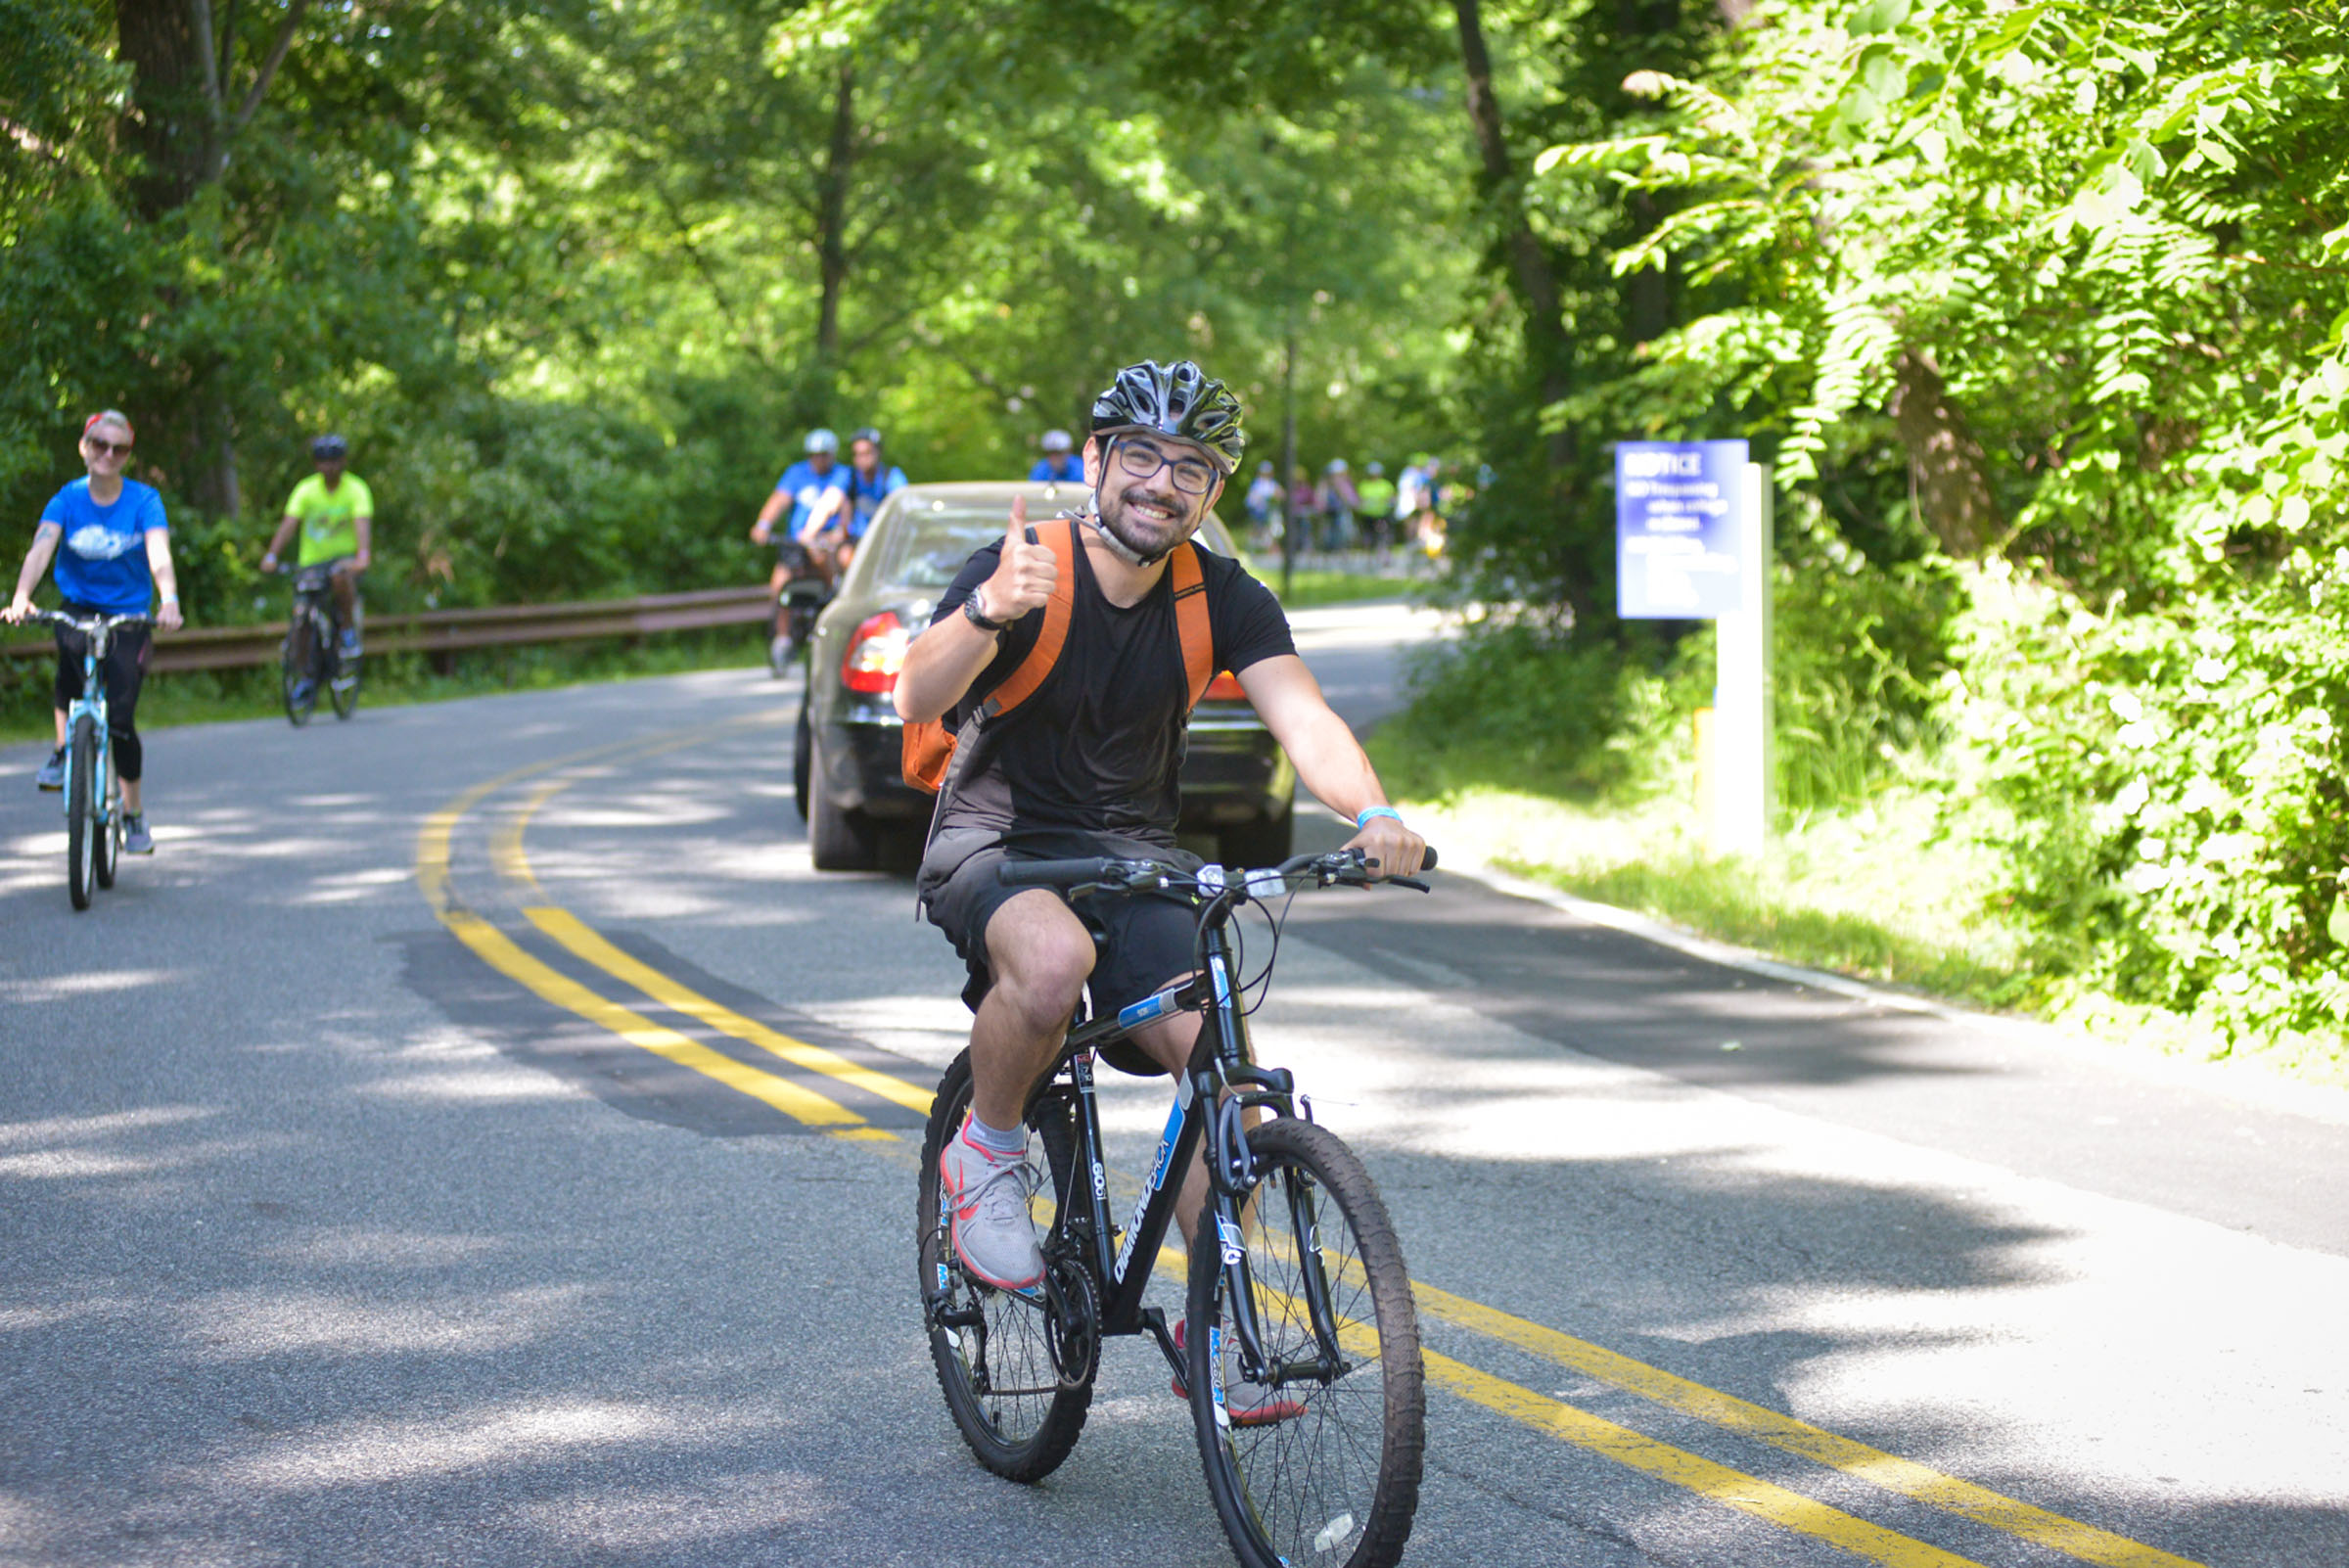 2017-06-04 GTD4A Charity Bike Ride - BCC - Paramus NJ-1933.jpg